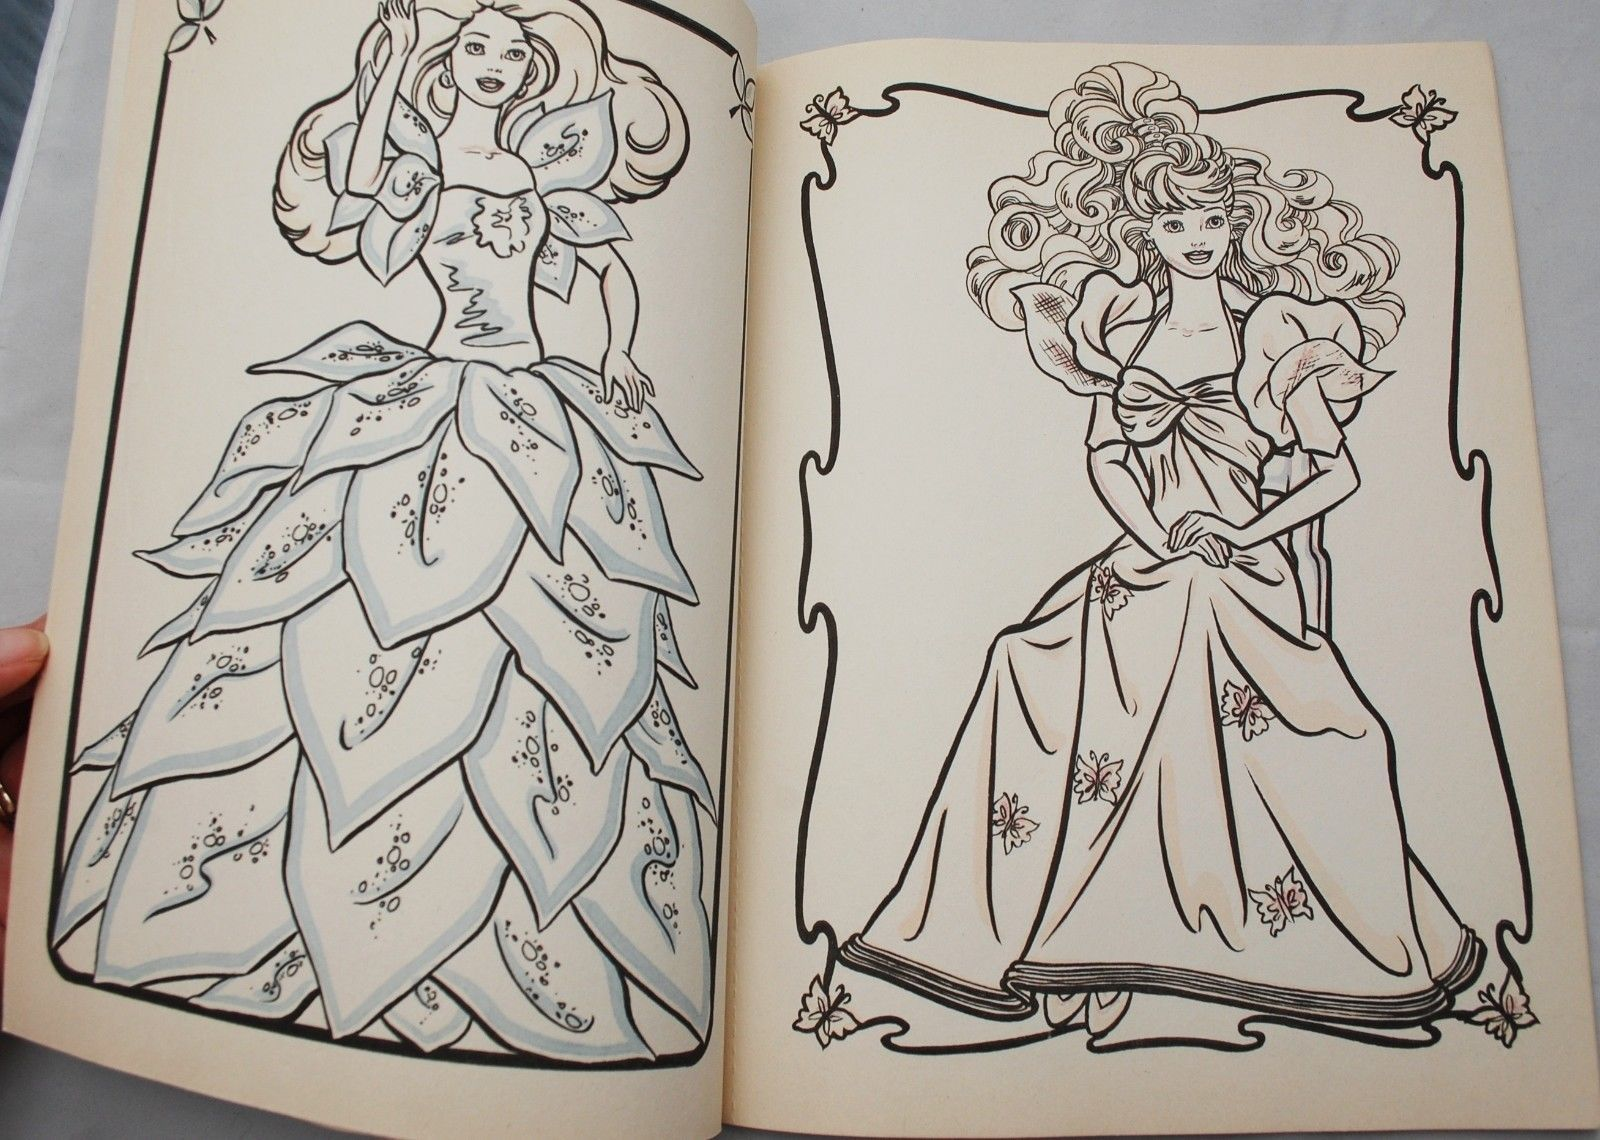 Barbie Paint With Water Coloring Book 1990 Unused Golden 1785 4 With Brush